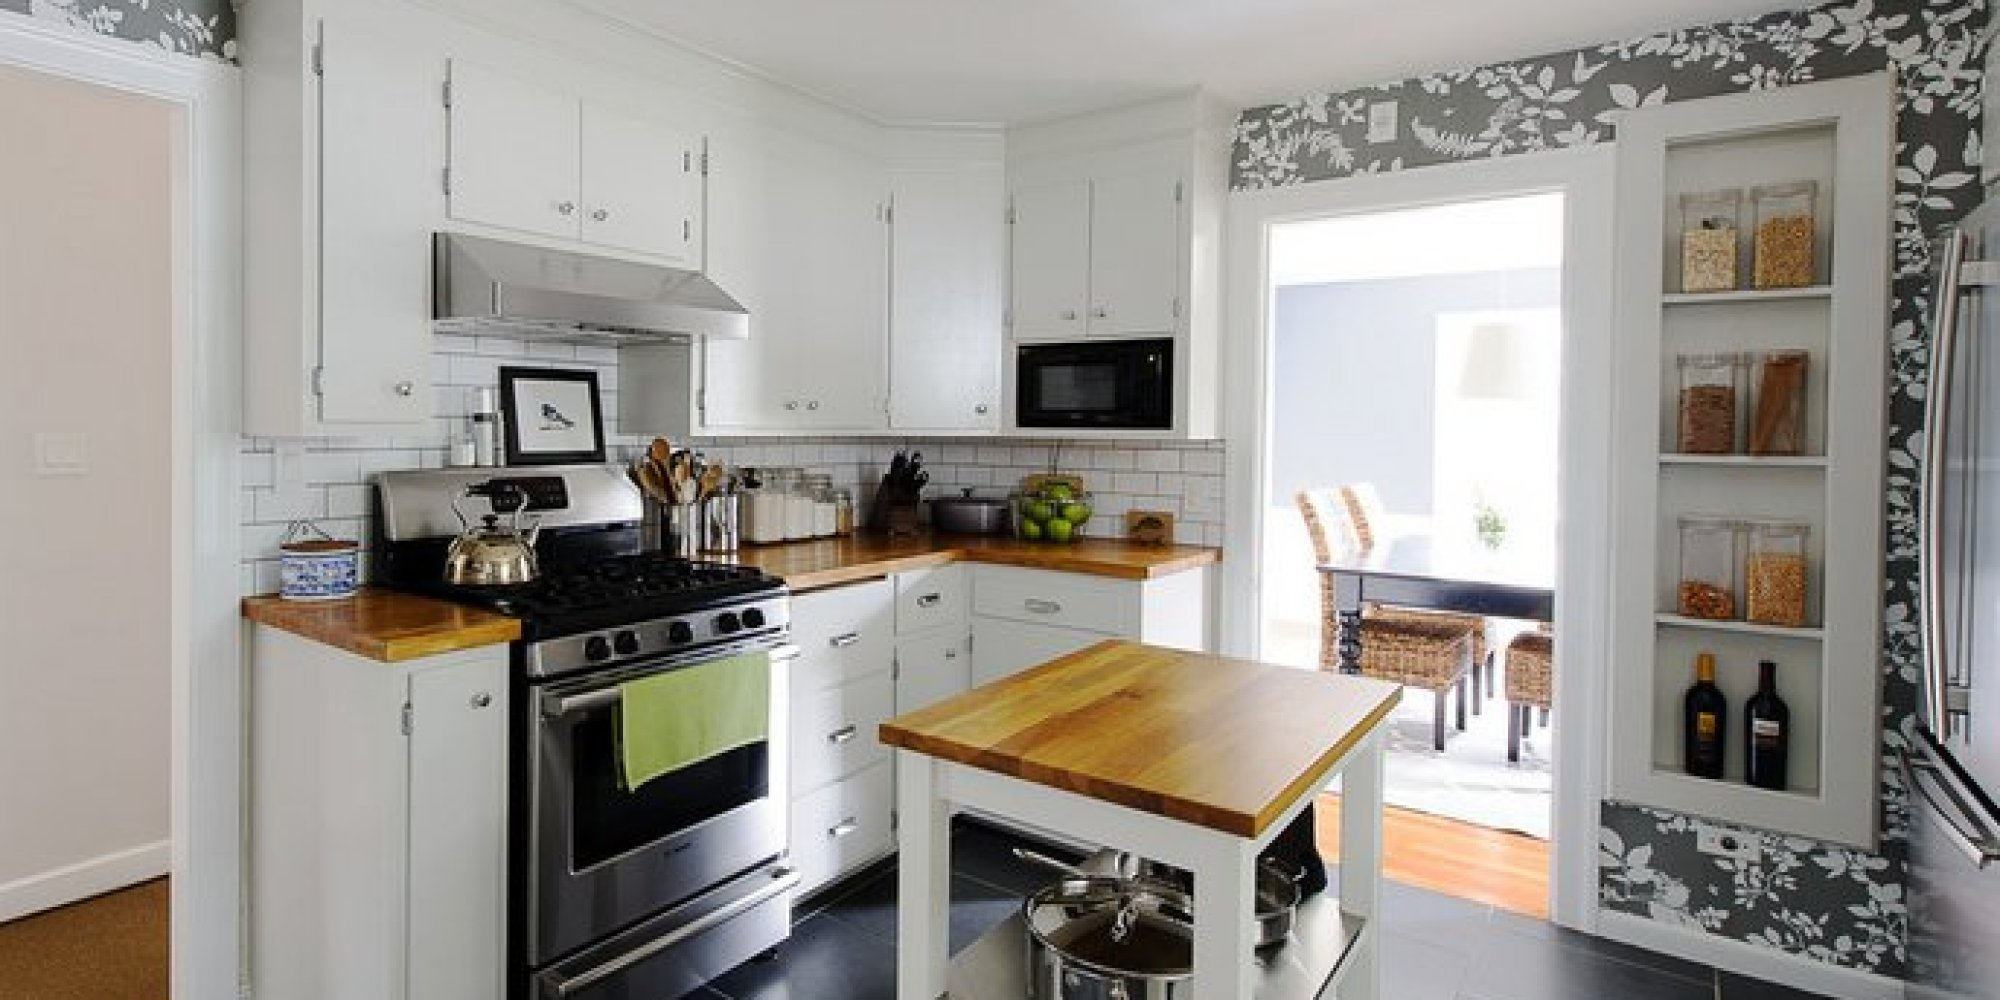 Inexpensive Ways To Fix Up Your Kitchen PHOTOS HuffPost - Discounted kitchen cabinets